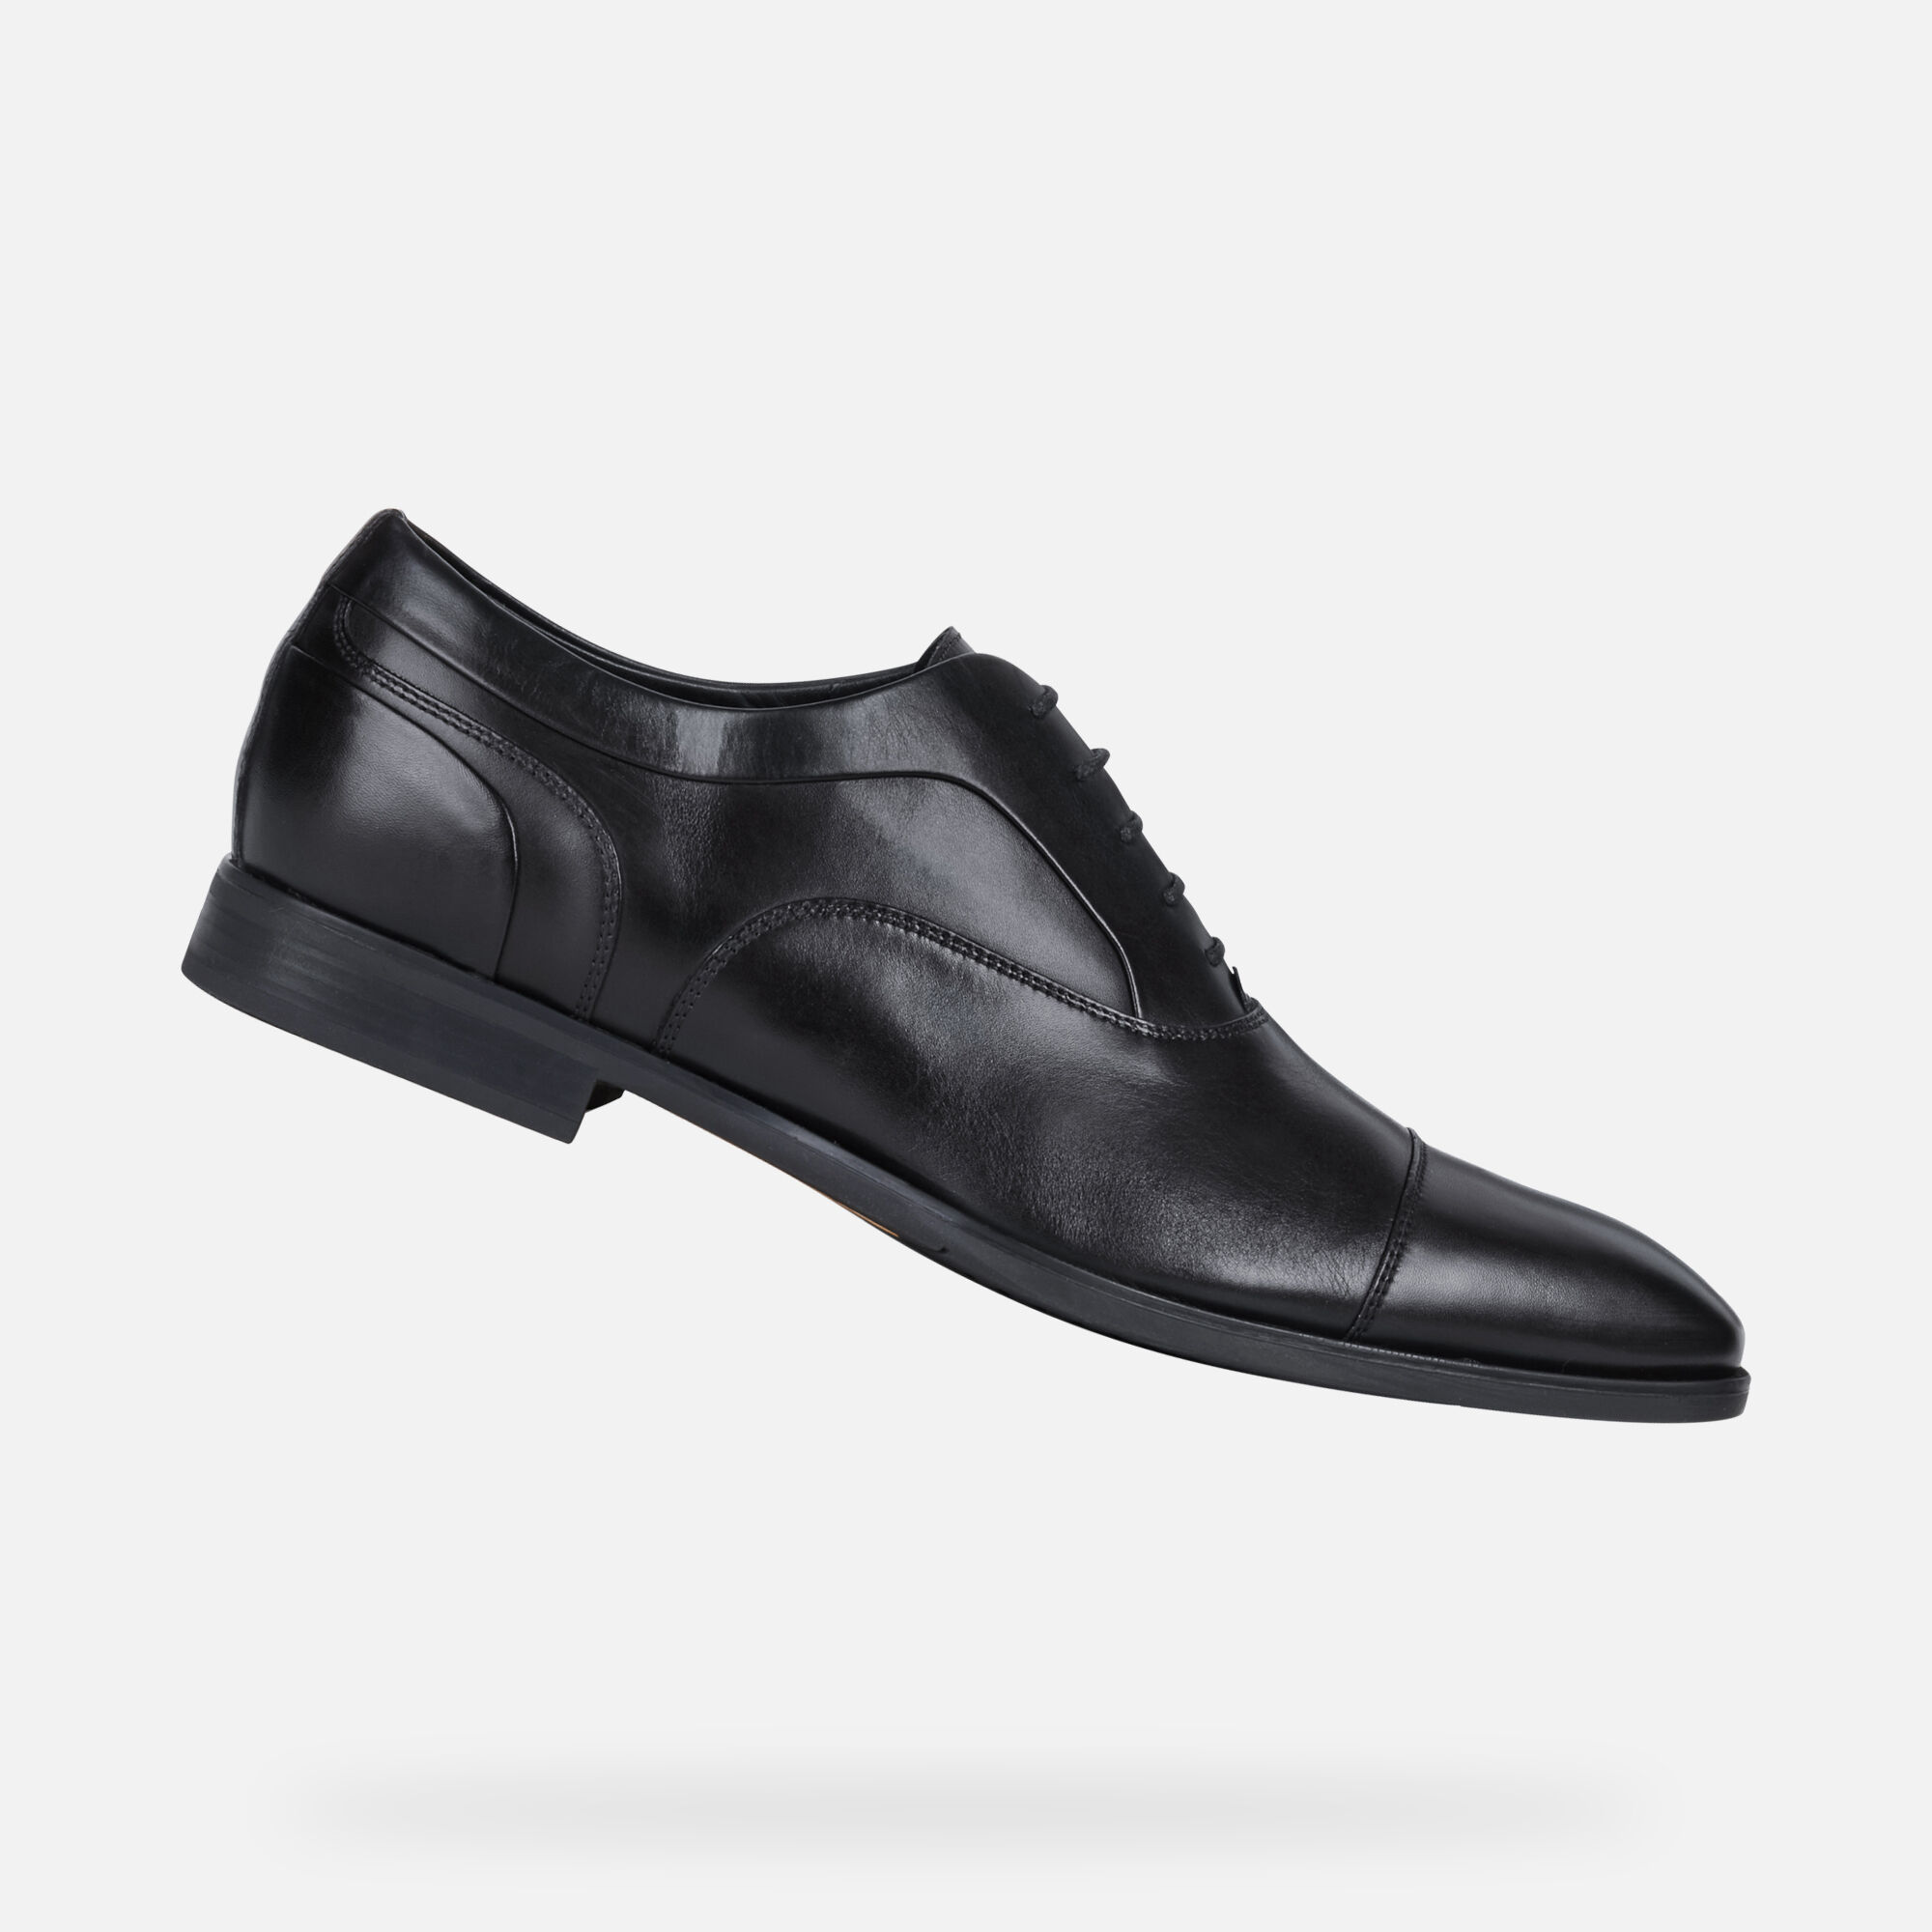 Geox NEW LIFE Homme Chaussures Noires | Collection d'Automne